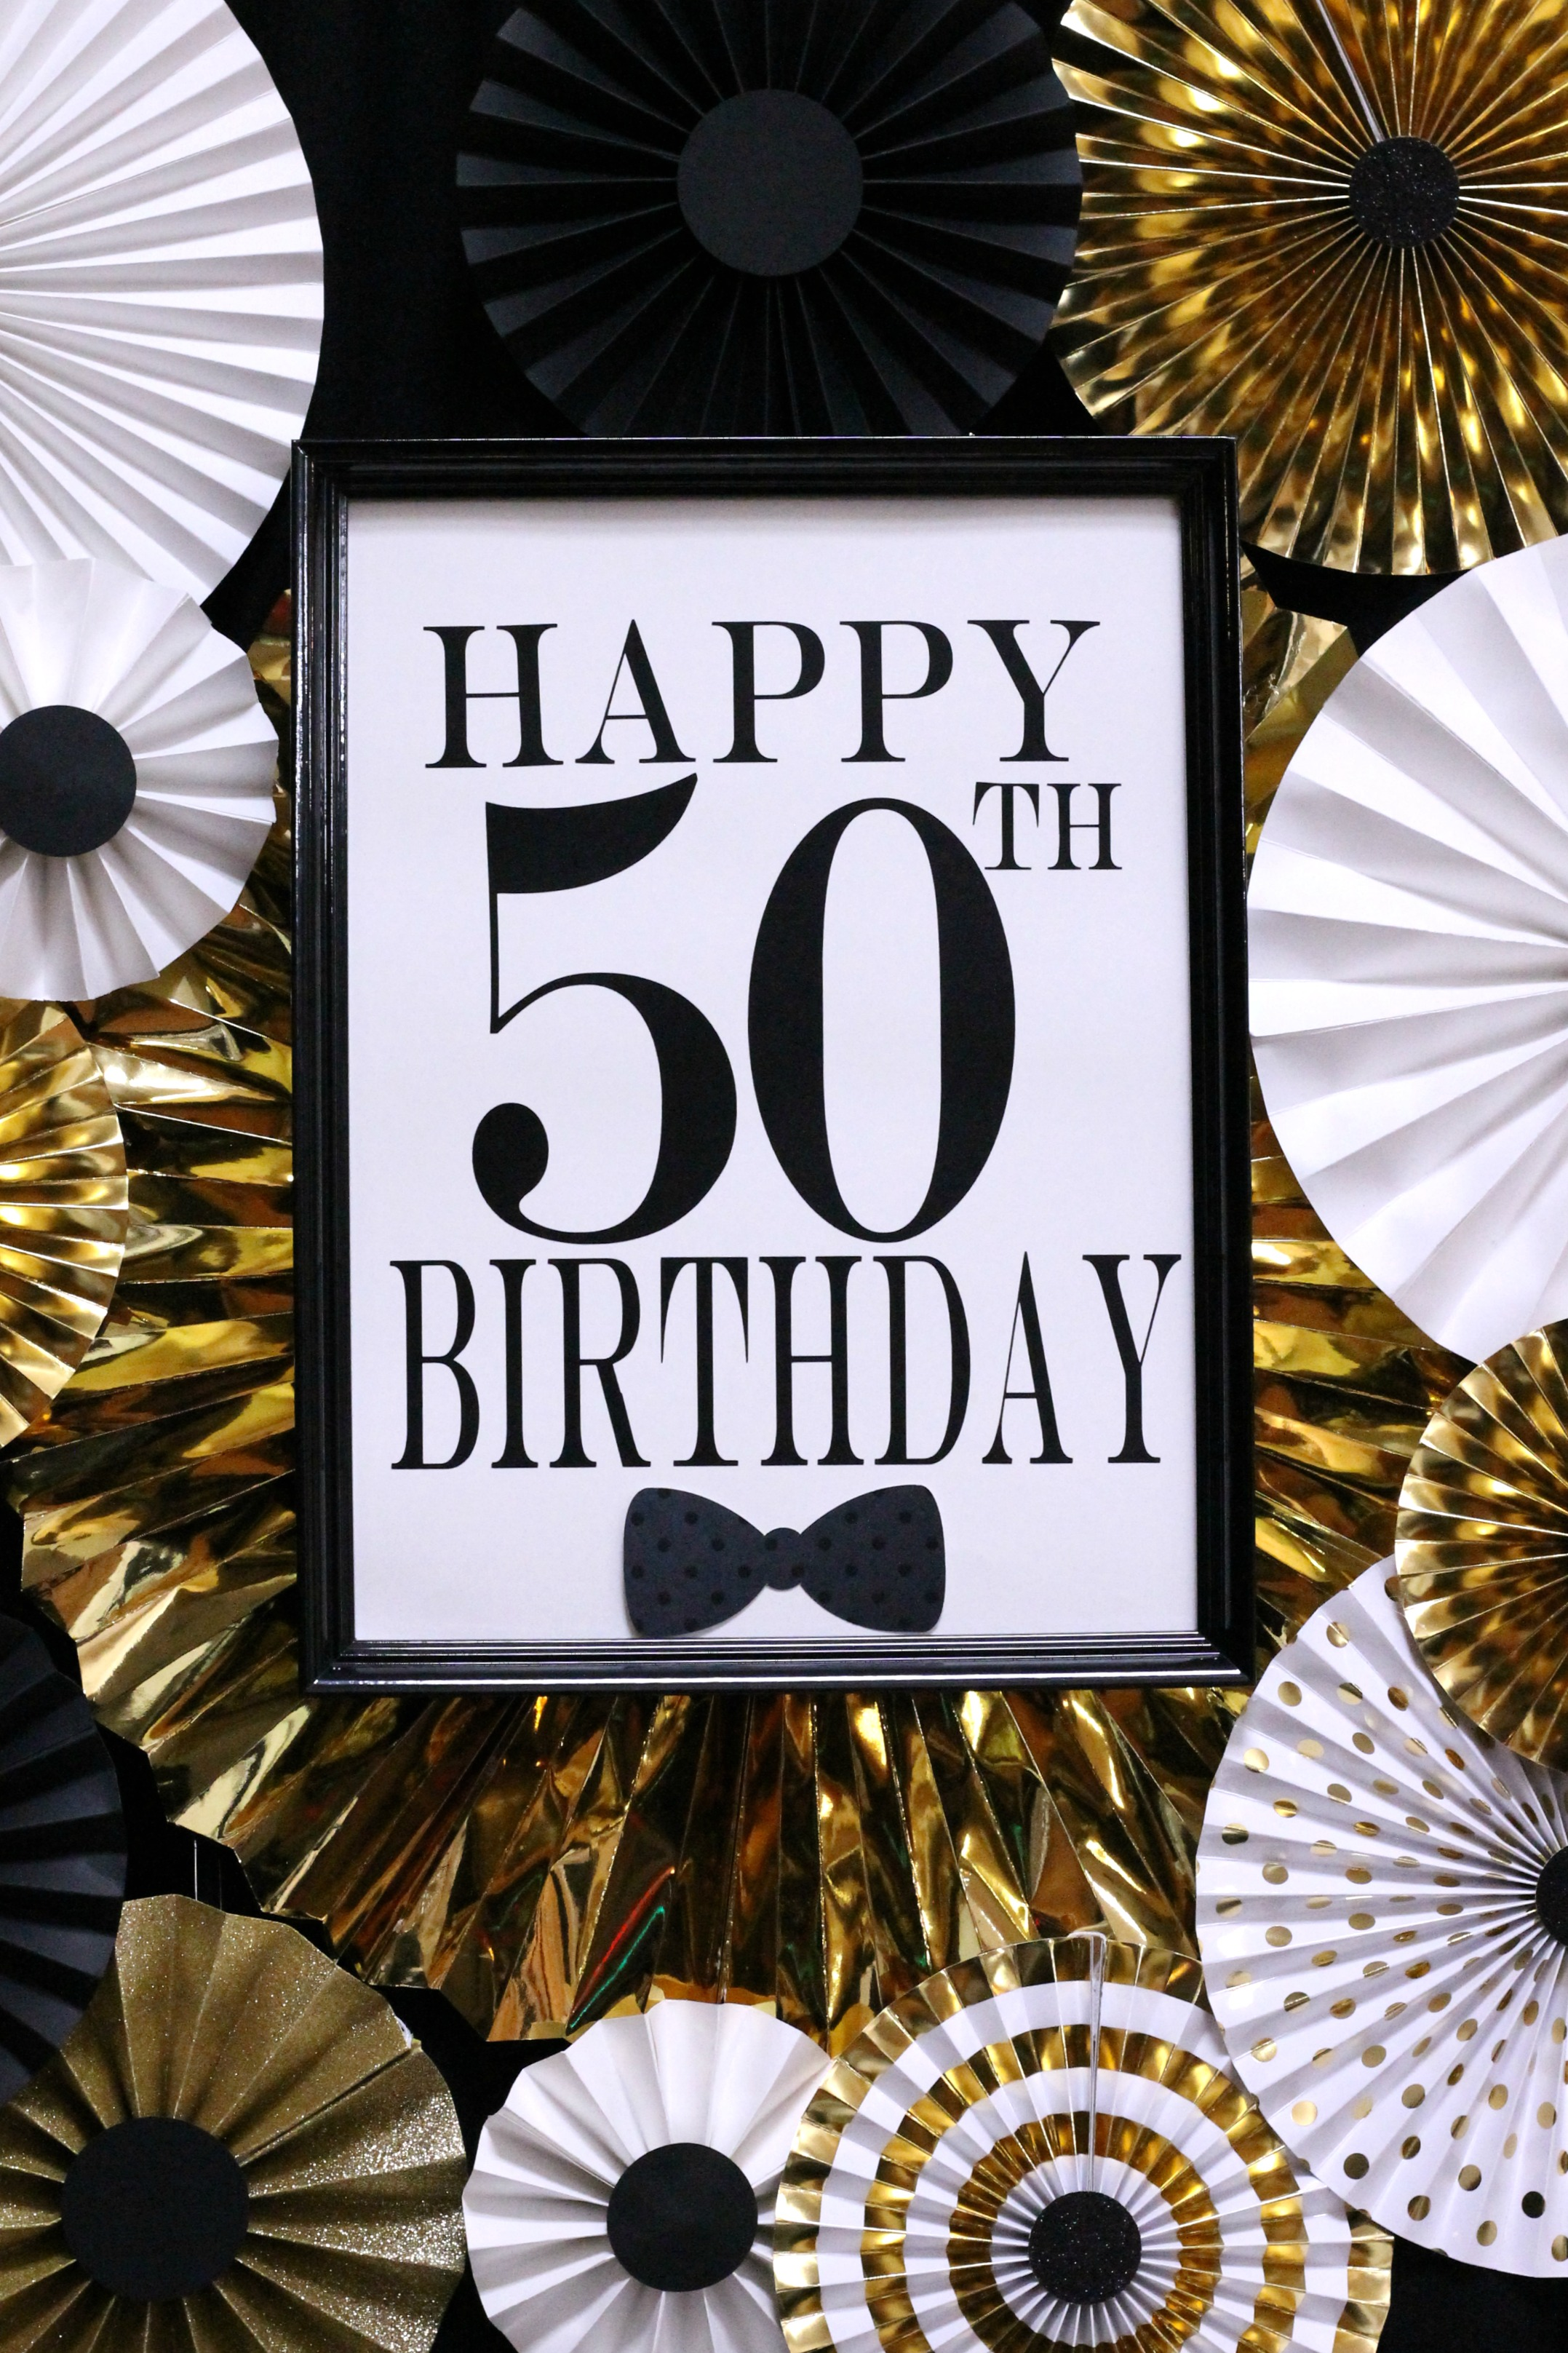 50th Birthday-black,gold and white party,50th party ideas,Happy 50th Birthday.jpg